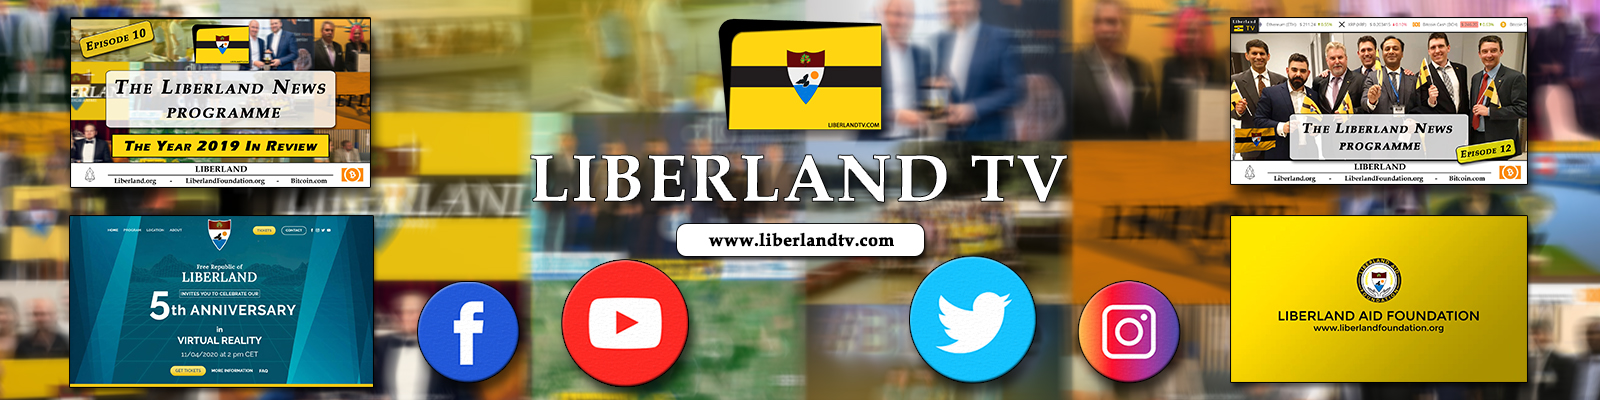 Liberland Tv Free Republic of Liberland advertising bitcoin blockchain libertarian crypto